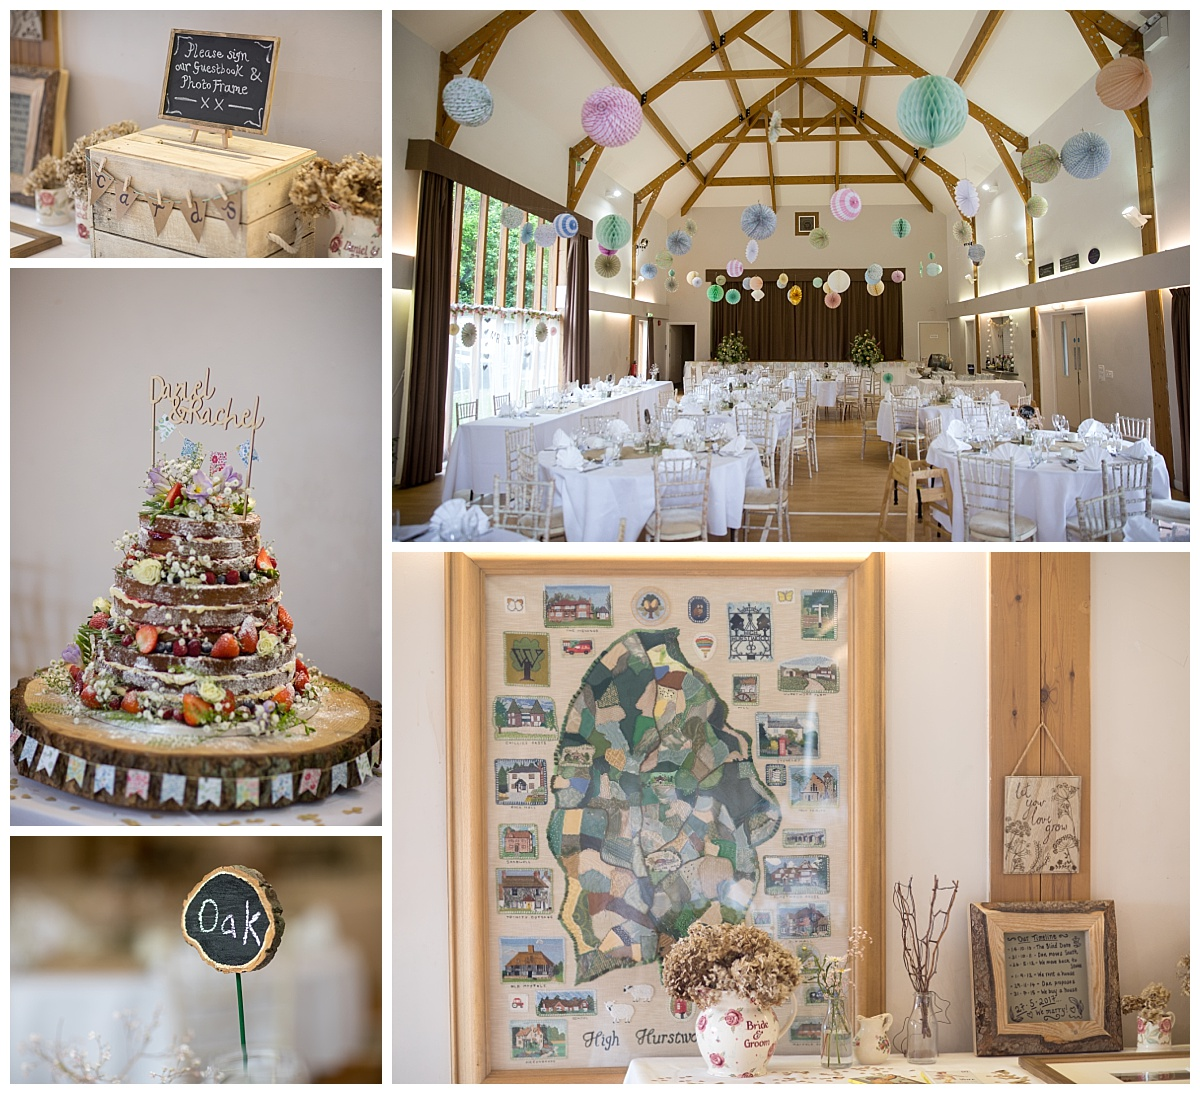 High Hurstwood Village Hall Wedding